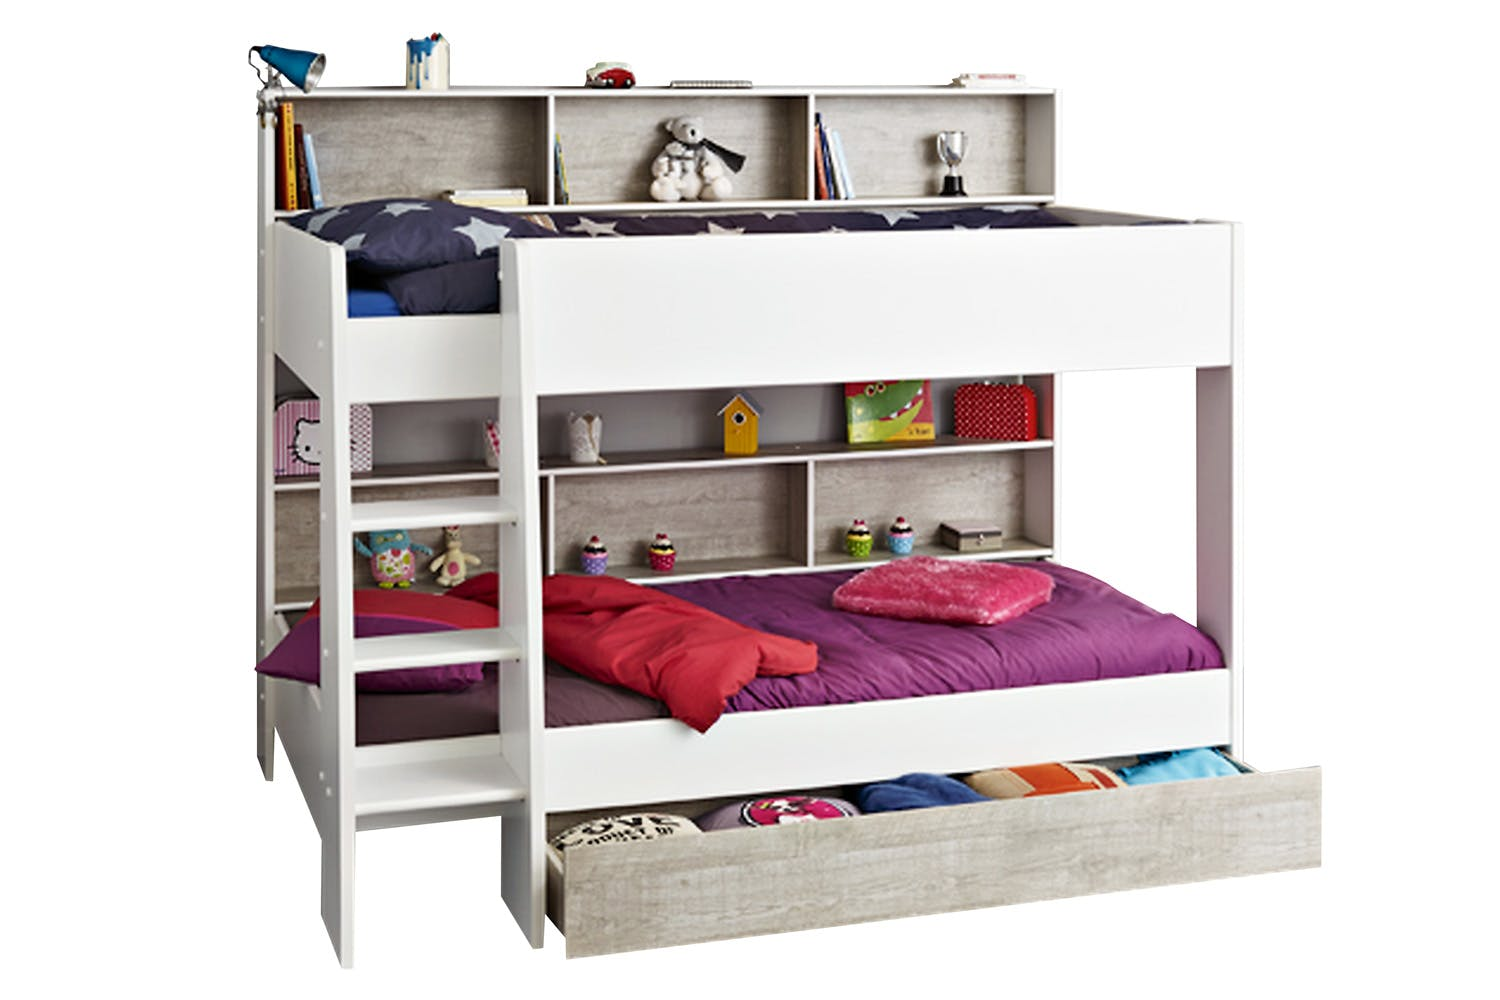 for storage huge free with decorations home beds twin ideas over enough best drawersbunk two bunk systemsbunk these plans under bedroom bed stairs drawers drawersunder image sturdy queen